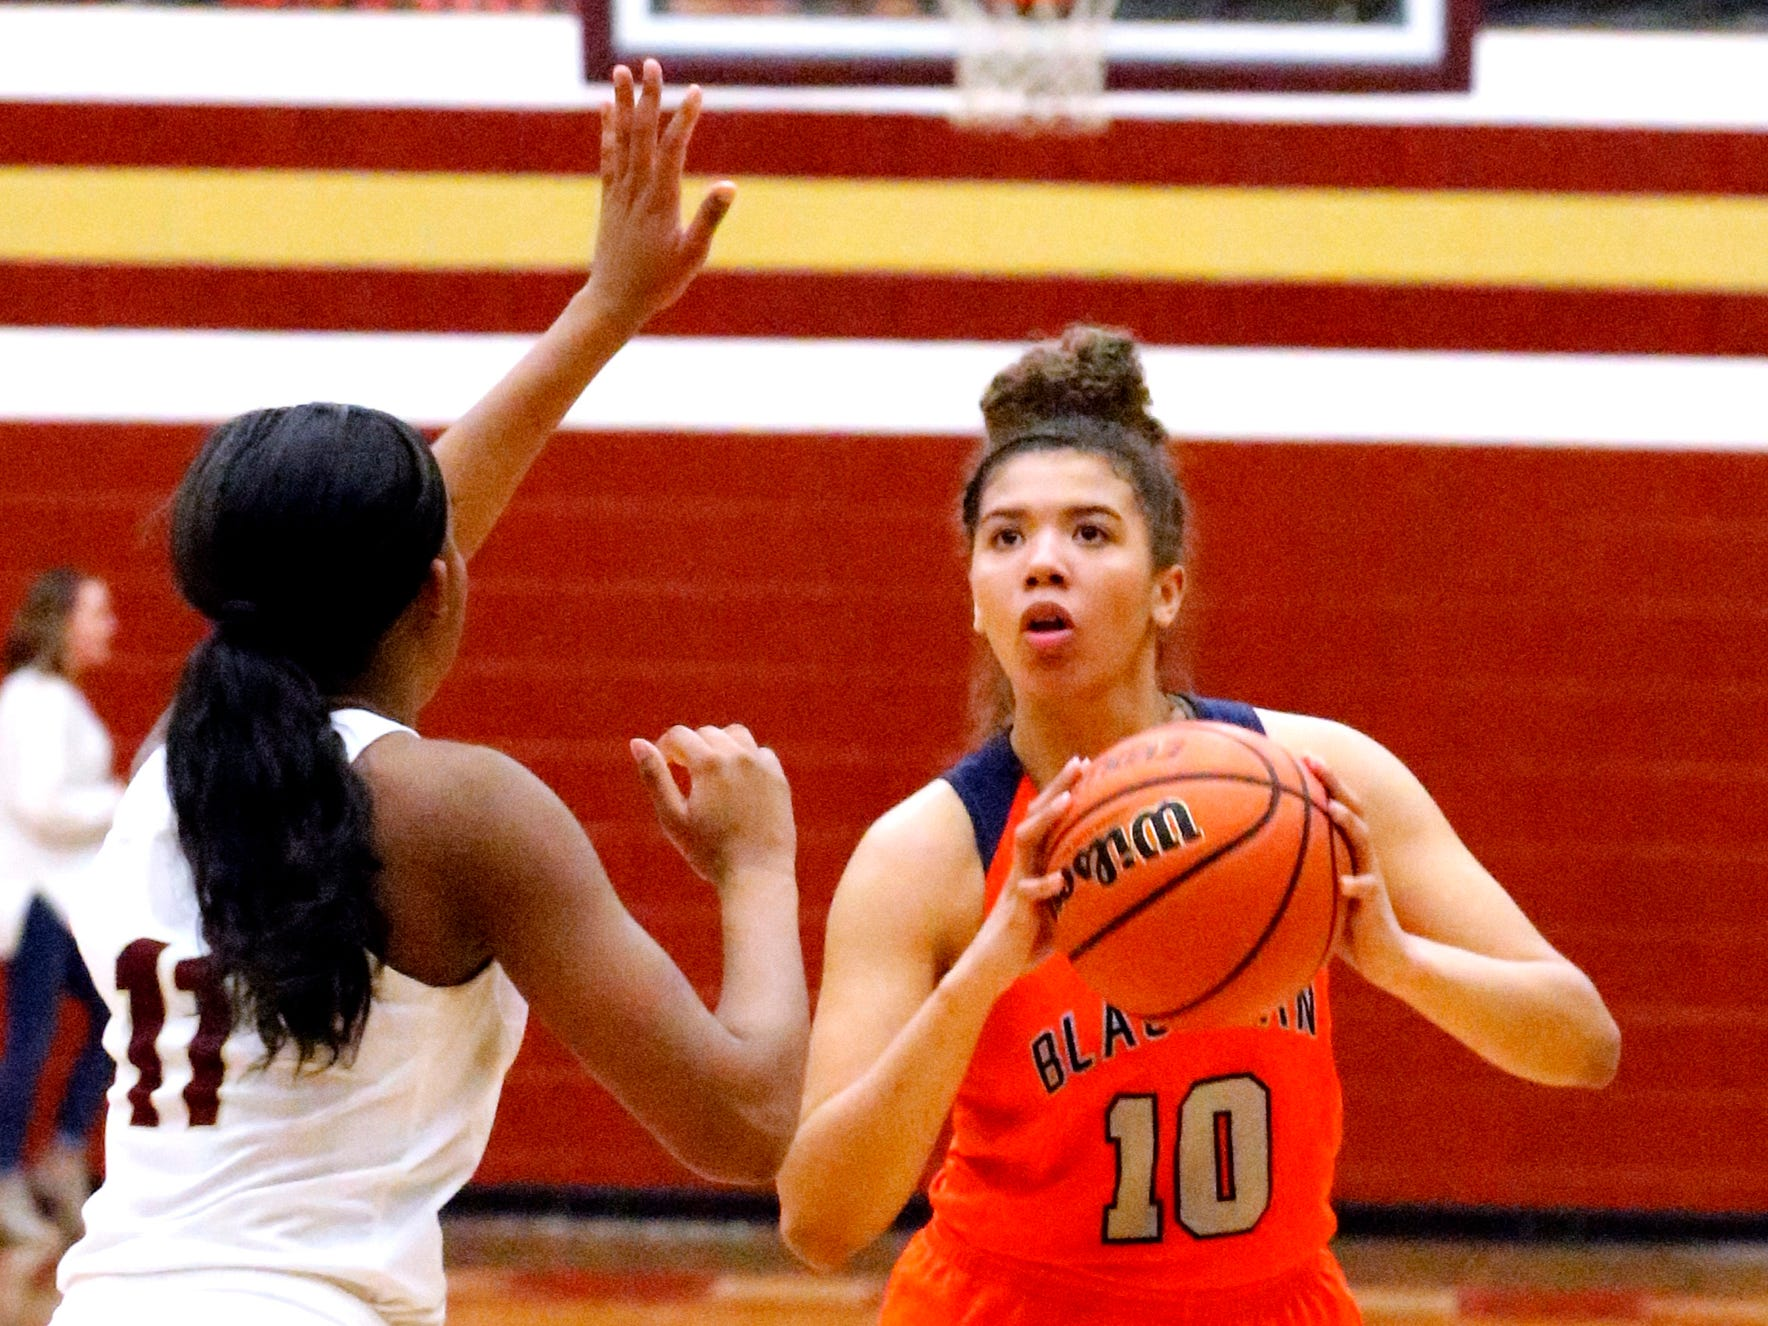 Blackman's Jaida Bond (10) goes for a three point basket as Riverdale's Aislynn Hayes (11) guards her on Tuesday Jan. 8, 2019.